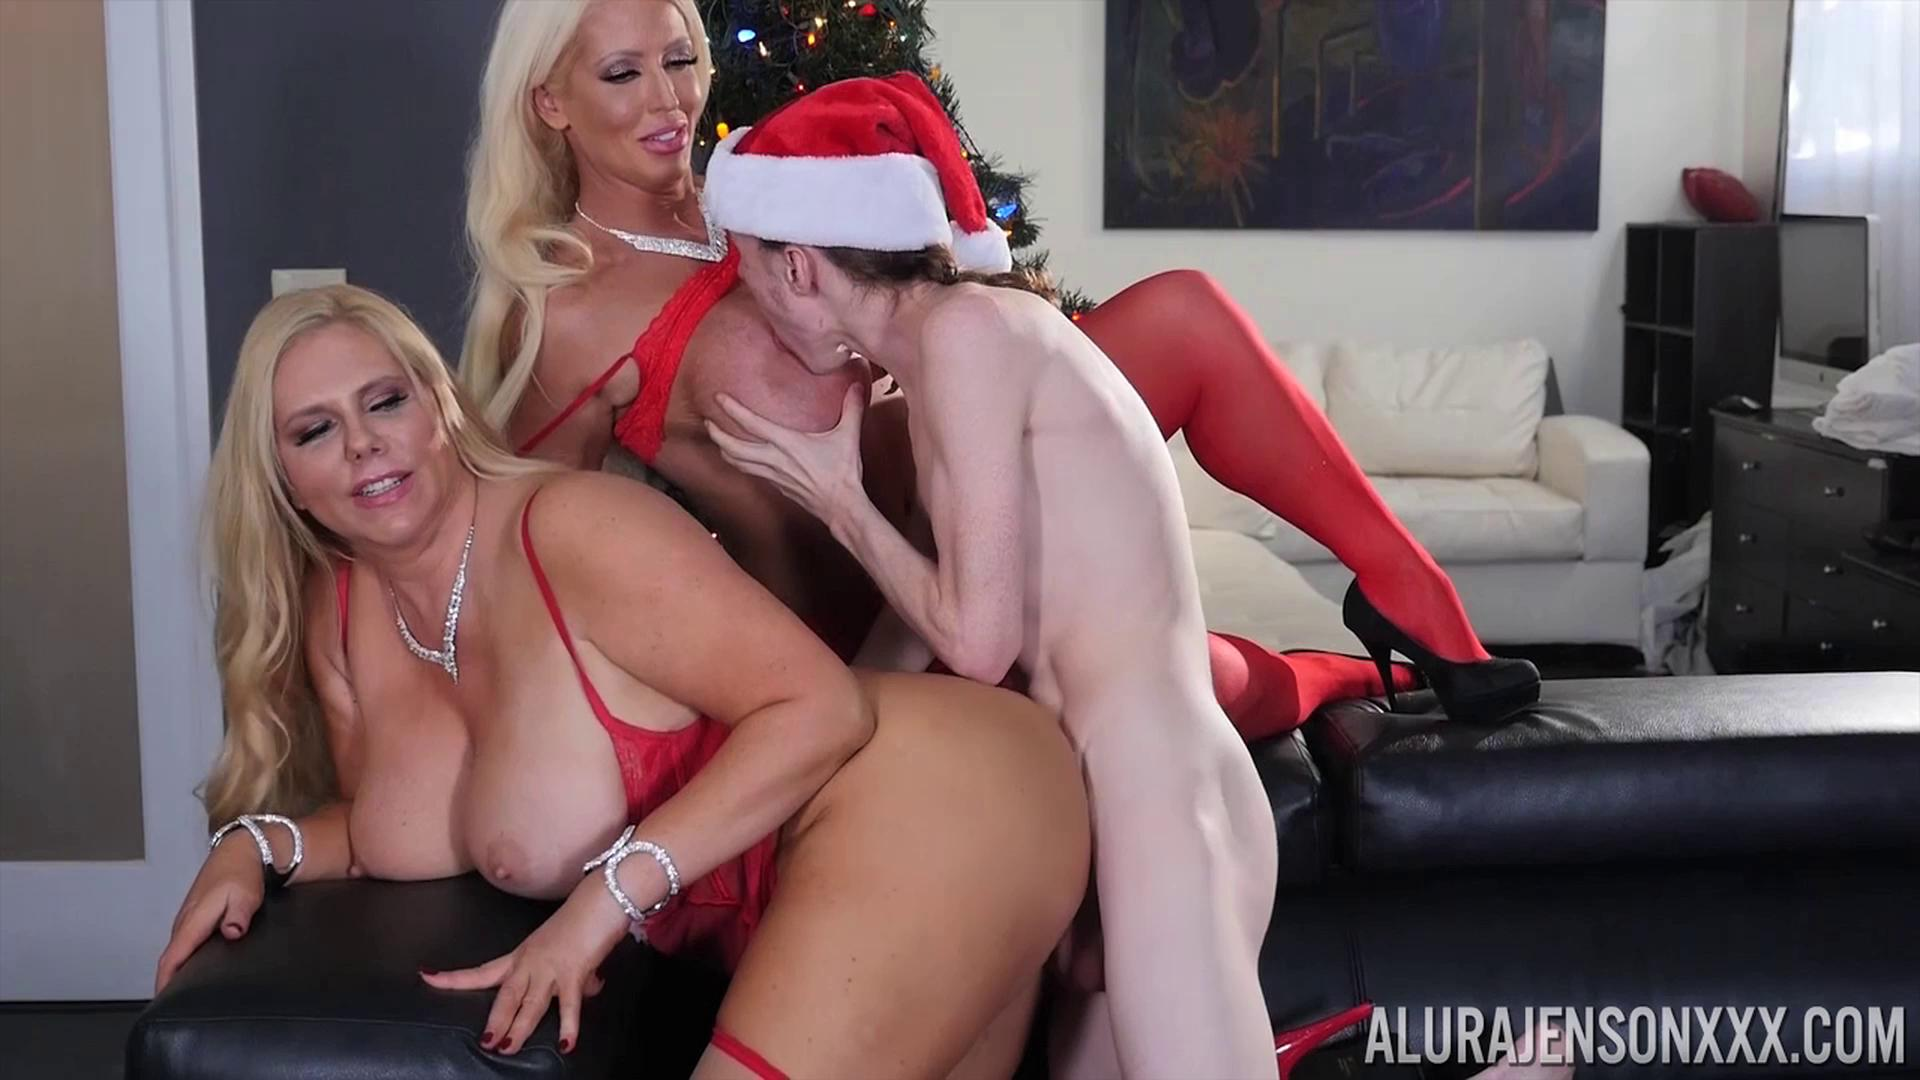 PornstarPlatinum – Alura Jenson And Karen Fisher My Big Xmas Present